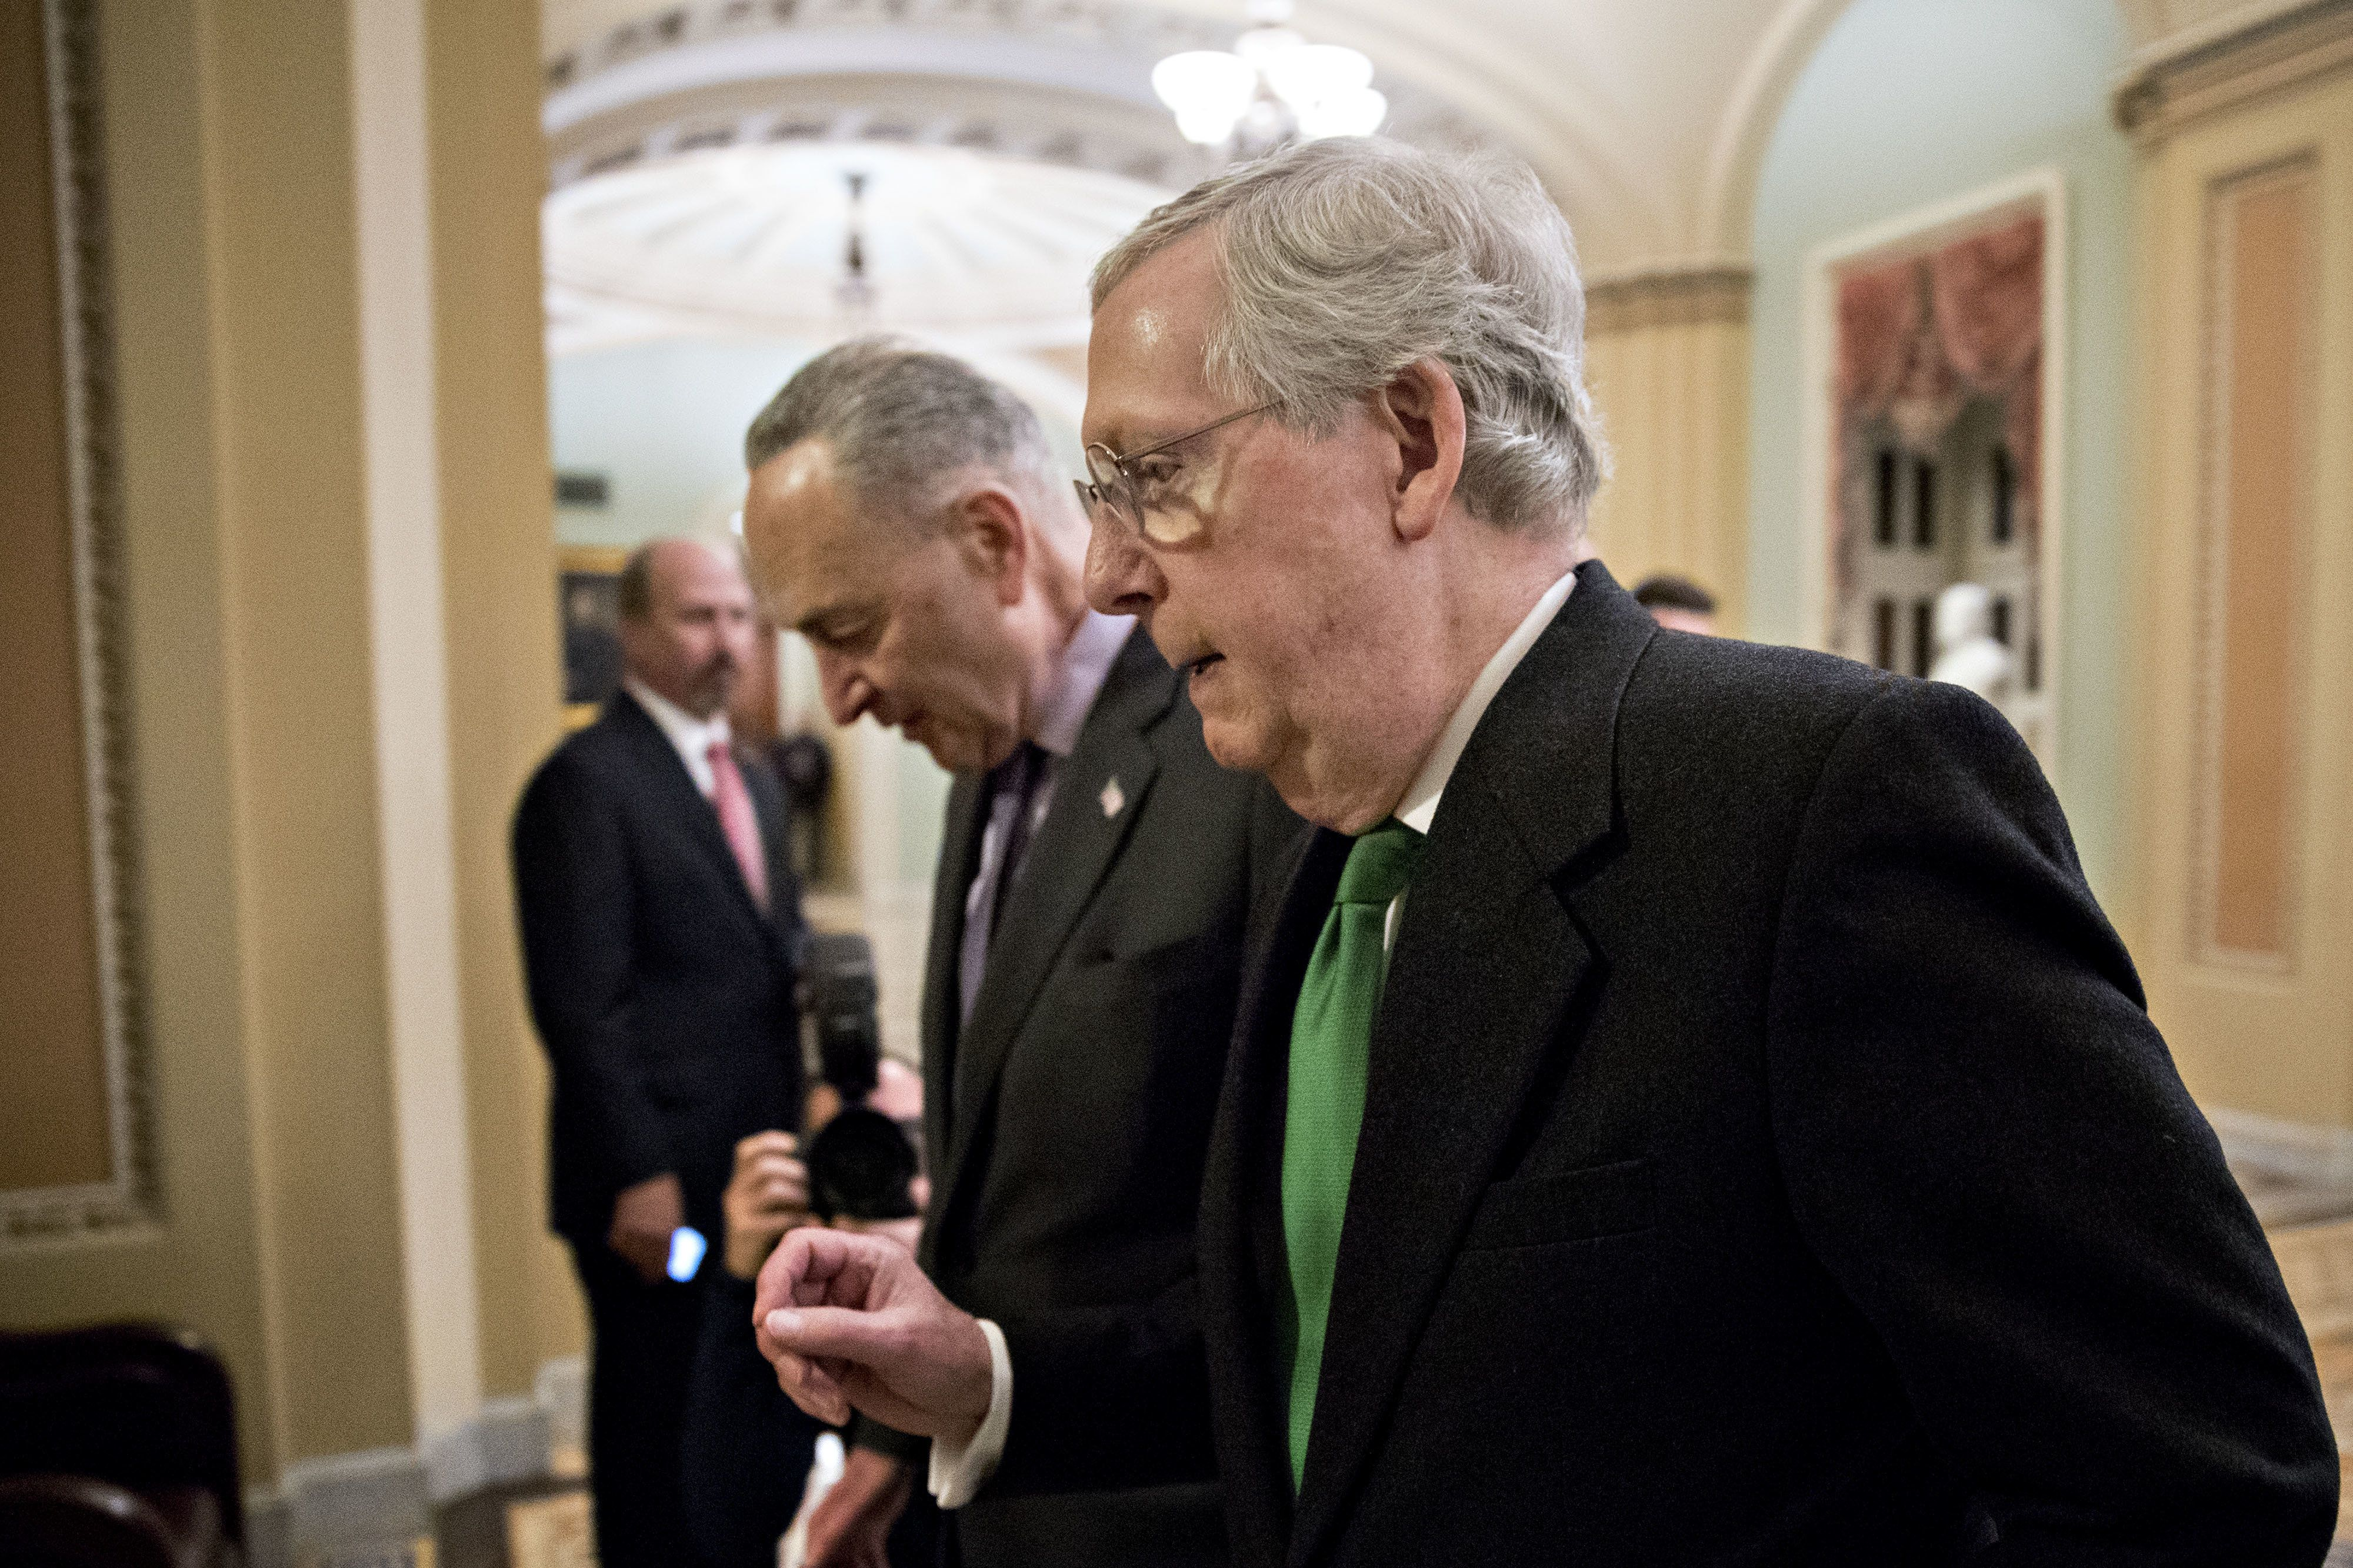 Senate Majority Leader Mitch McConnell, a Republican from Kentucky, right, talks to Senate Minority Leader Chuck Schumer, a Democrat from New York, while walking towards the Senate Chamber at the U.S. Capitol in Washington, D.C., U.S., on Wednesday, Feb. 7, 2018. Senate leaders agreed on a bipartisan two-year plan to increase federal spending by nearly $300 billion over two years, a pact likely to avert a government shutdown on Friday. Photographer: Andrew Harrer/Bloomberg via Getty Images